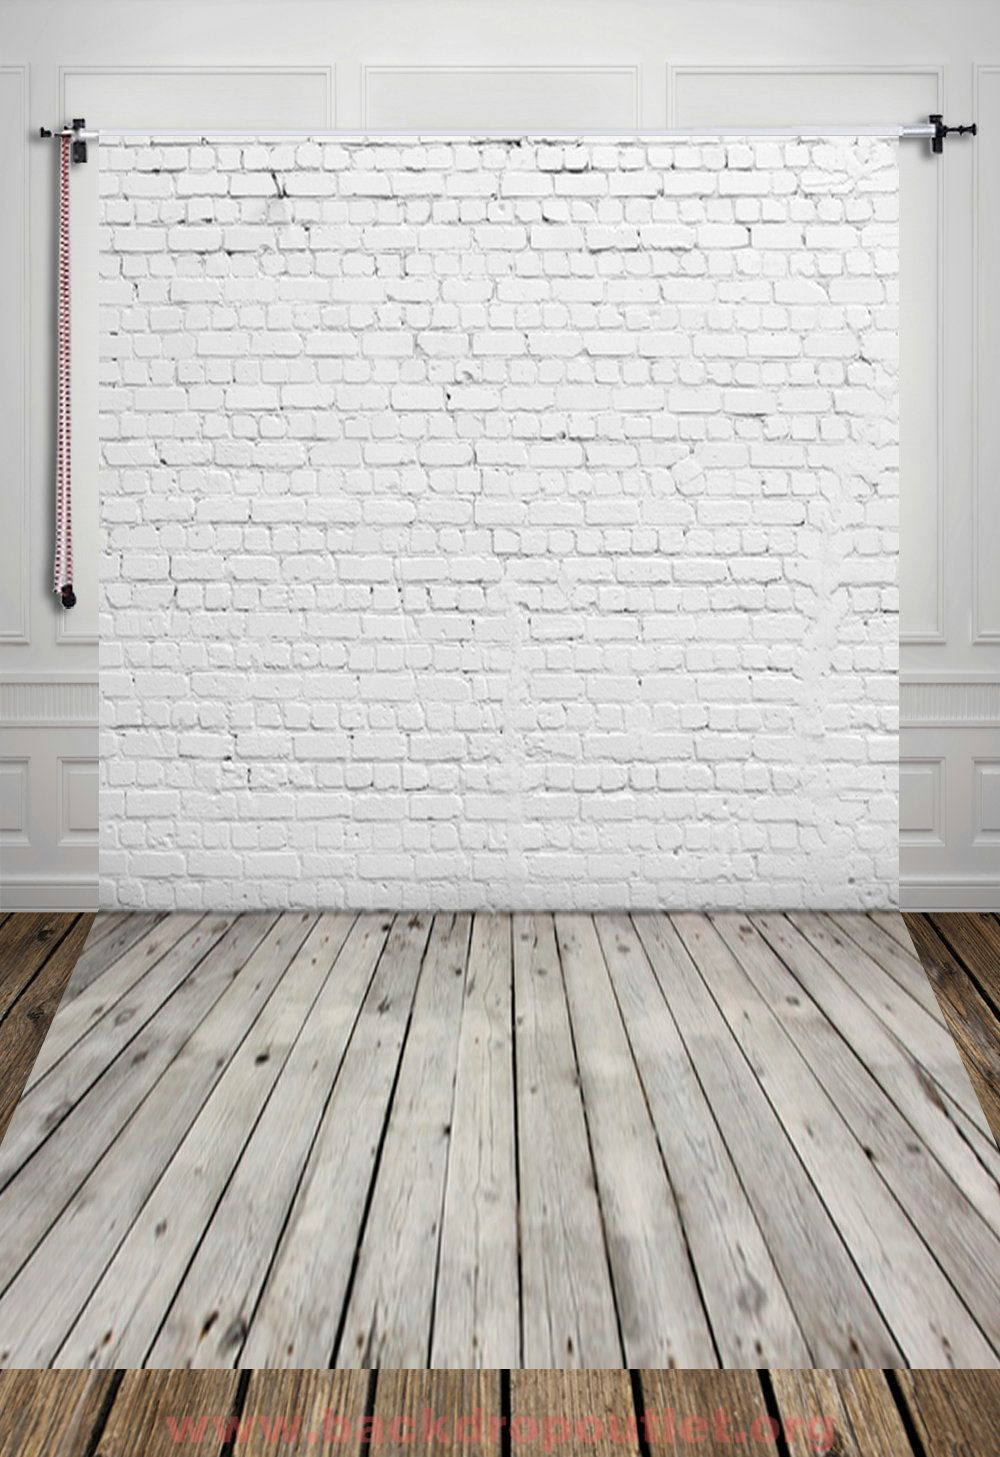 3x5ft flower wood wall vinyl background photography photo studio props - Photography Digital Printed Backdrop White Brick Wall With Gray Wooden Floor Background For Photo Studio Shoot